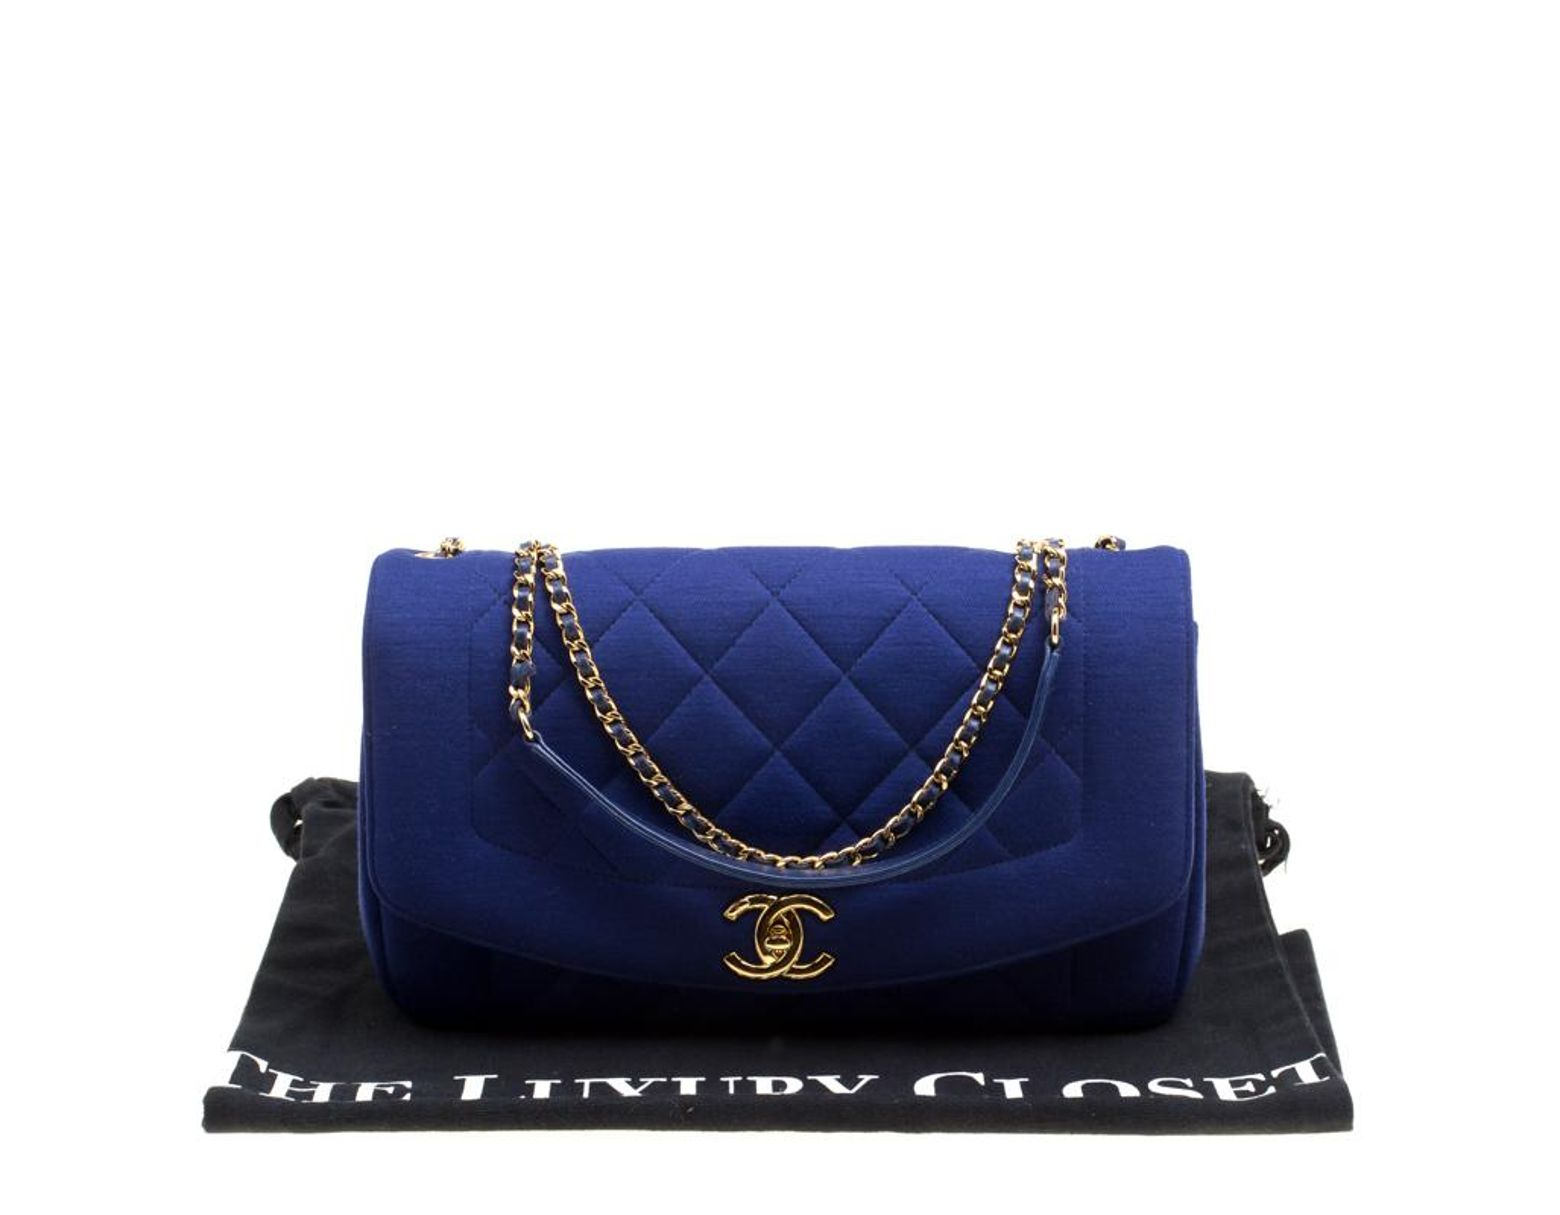 16a7f3b6190b Chanel Blue Quilted Jersey Diana Flap Bag in Blue - Lyst